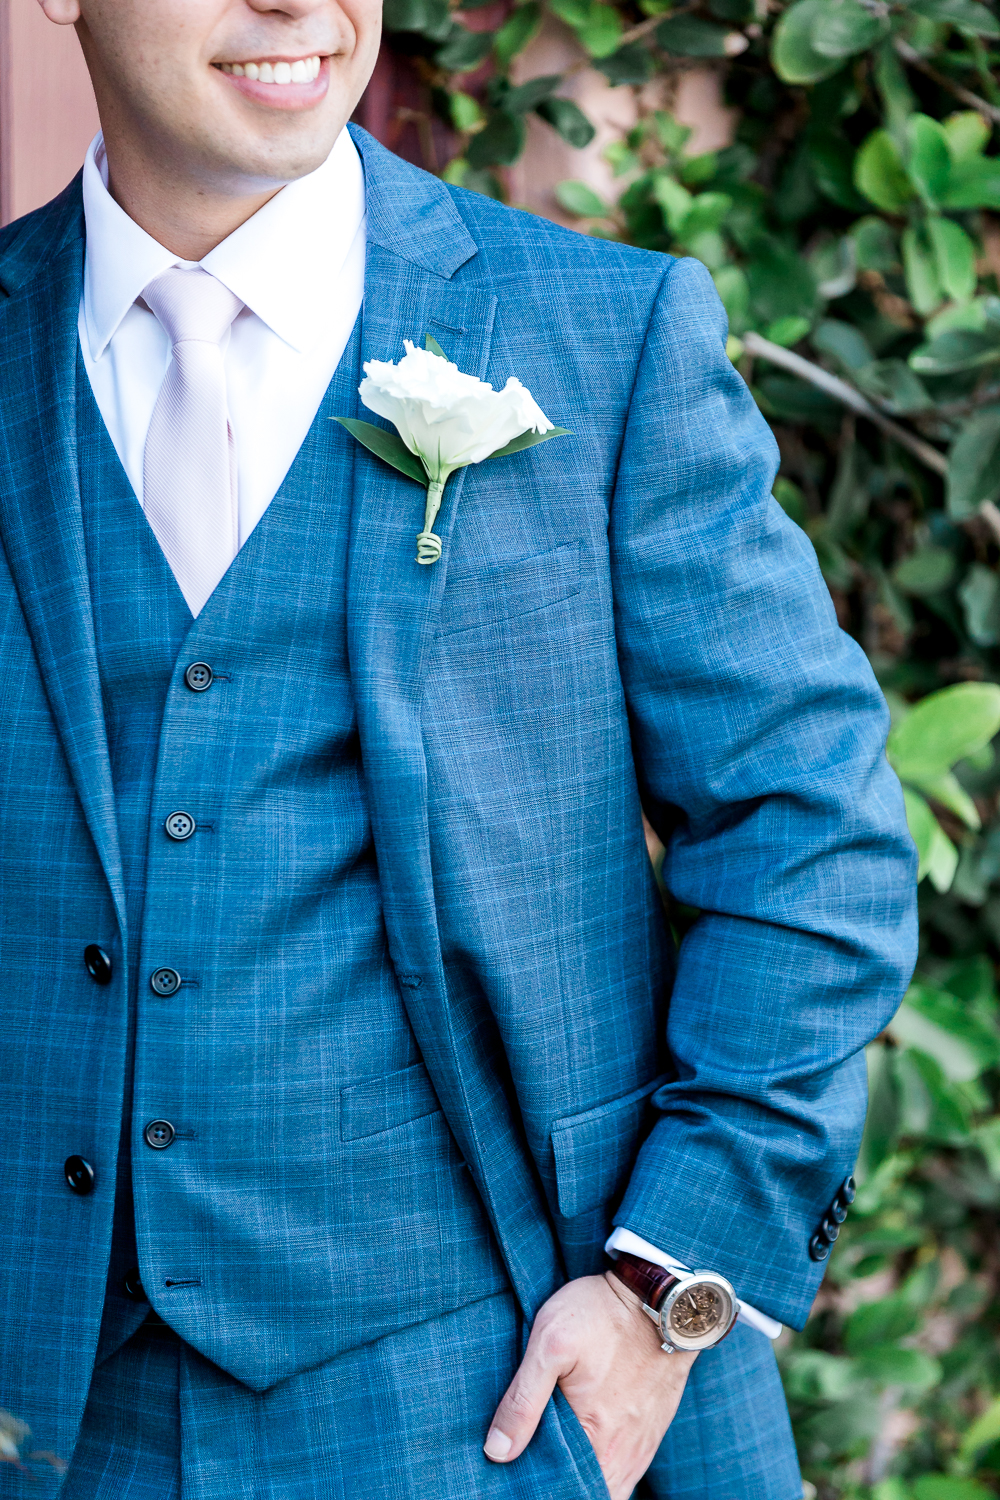 Detail shots of the groom